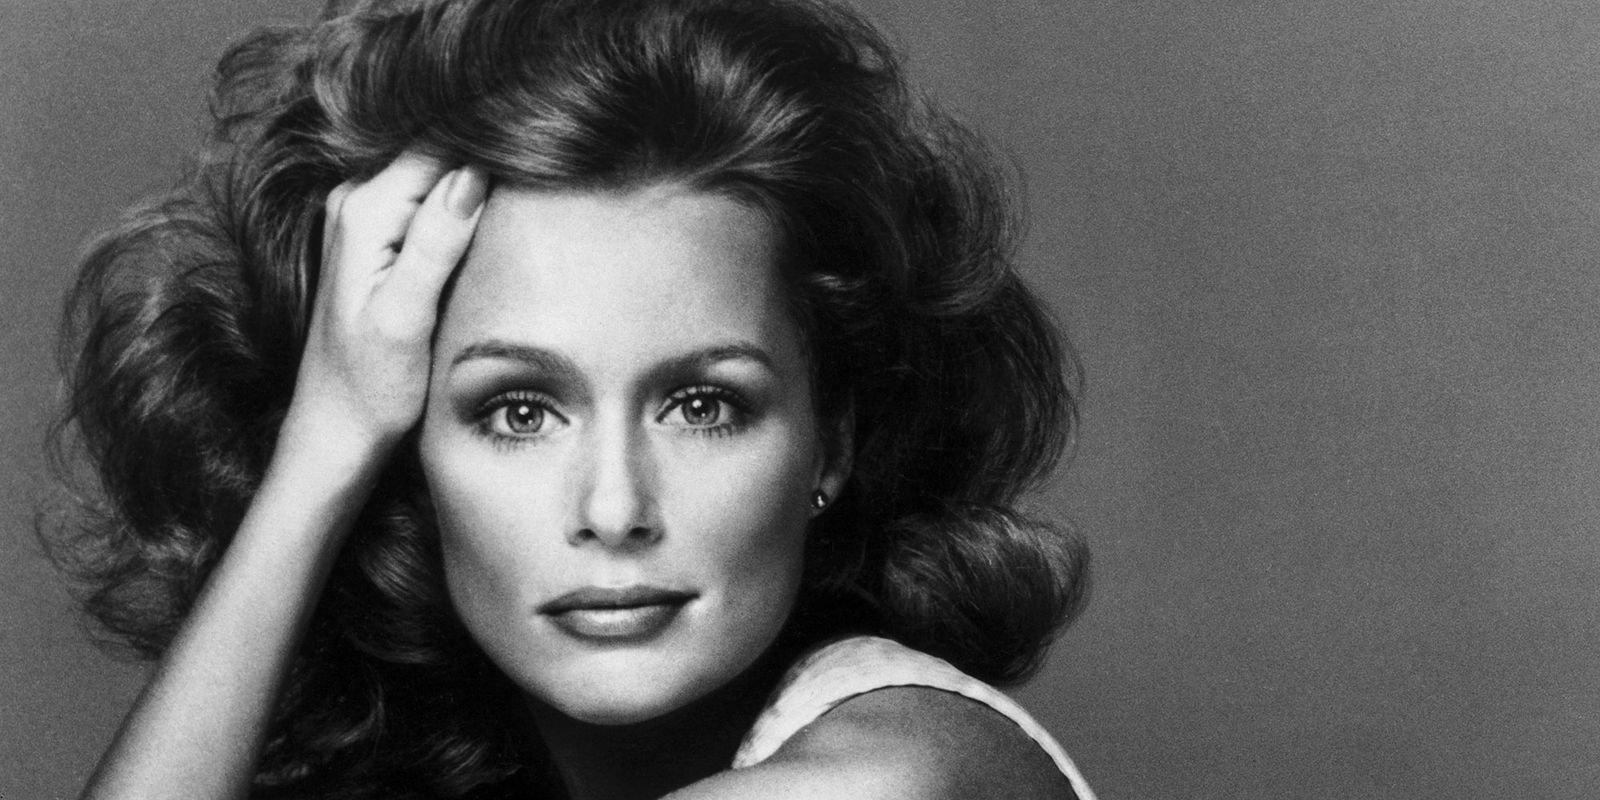 Lauren Hutton earned a  million dollar salary, leaving the net worth at 20 million in 2017